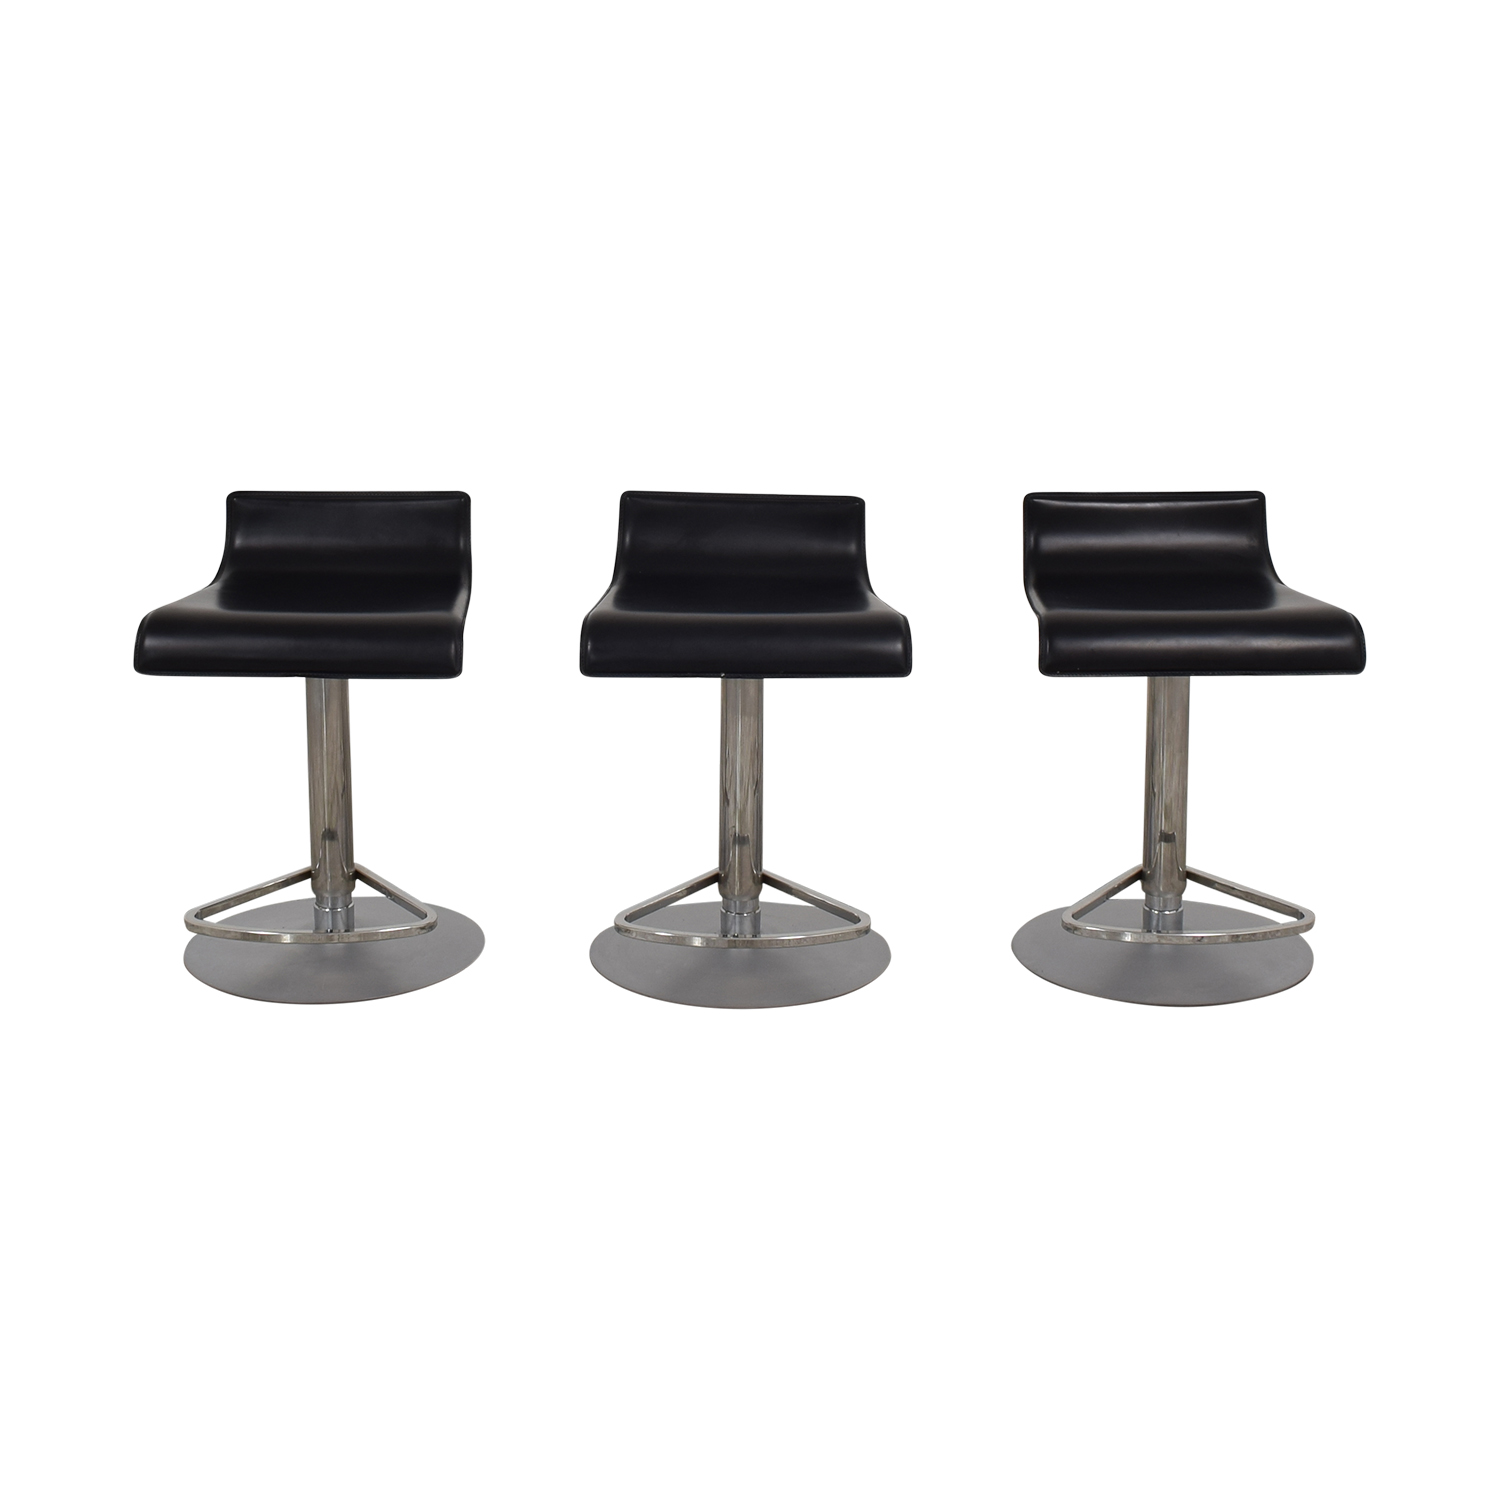 Ligne Roset Pam Bar Stools / Chairs